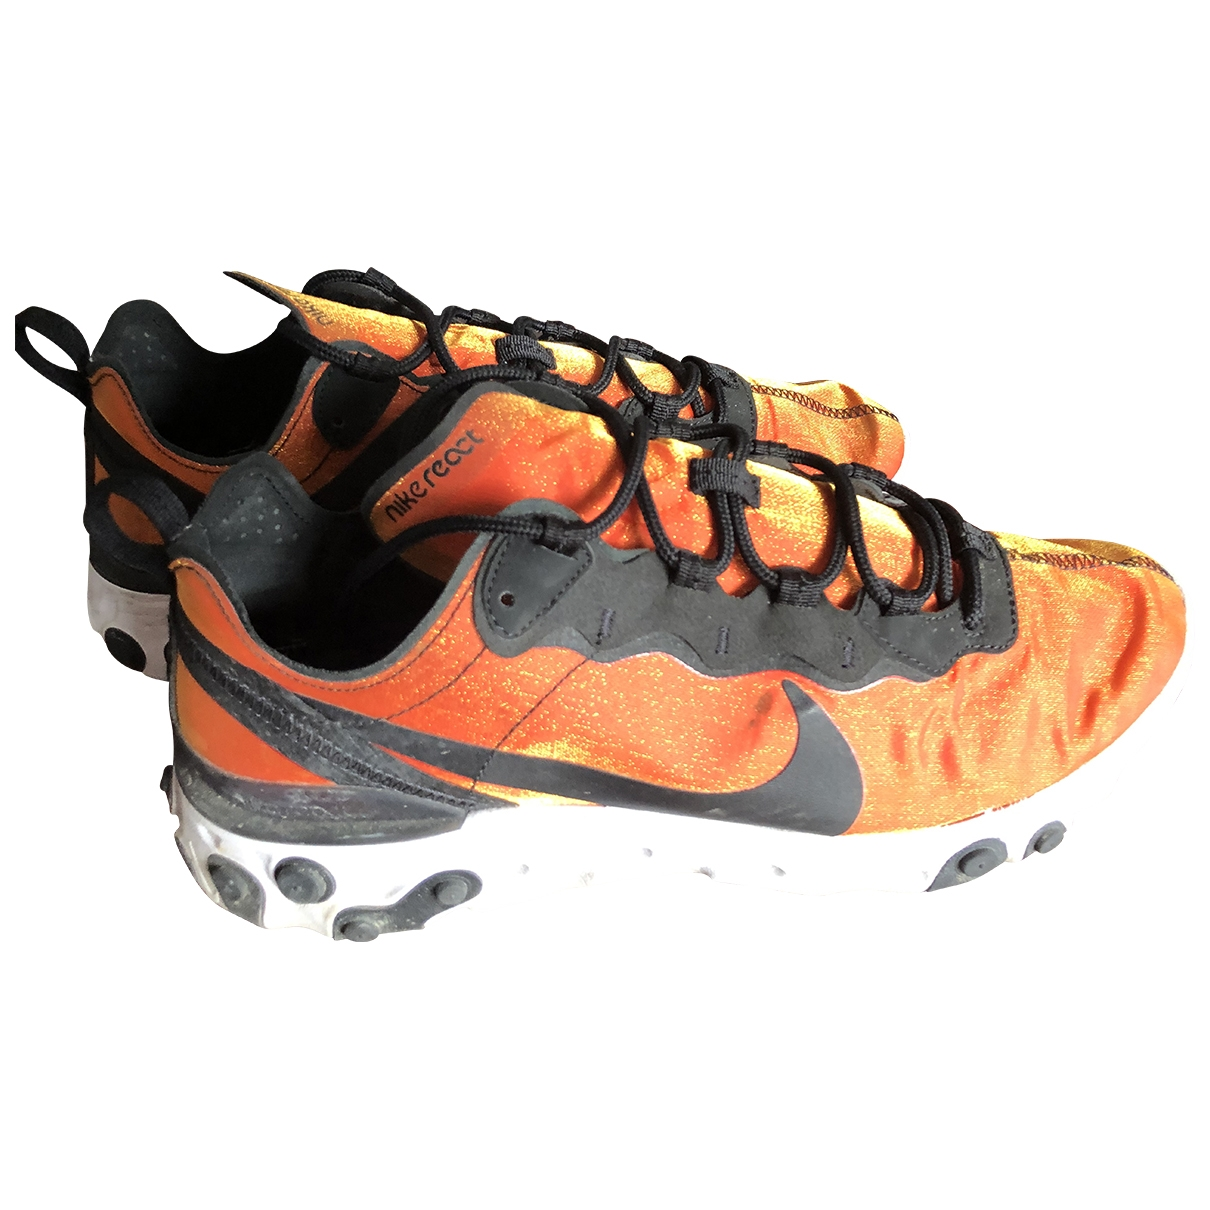 Nike React element 55 Orange Cloth Trainers for Men 42.5 IT